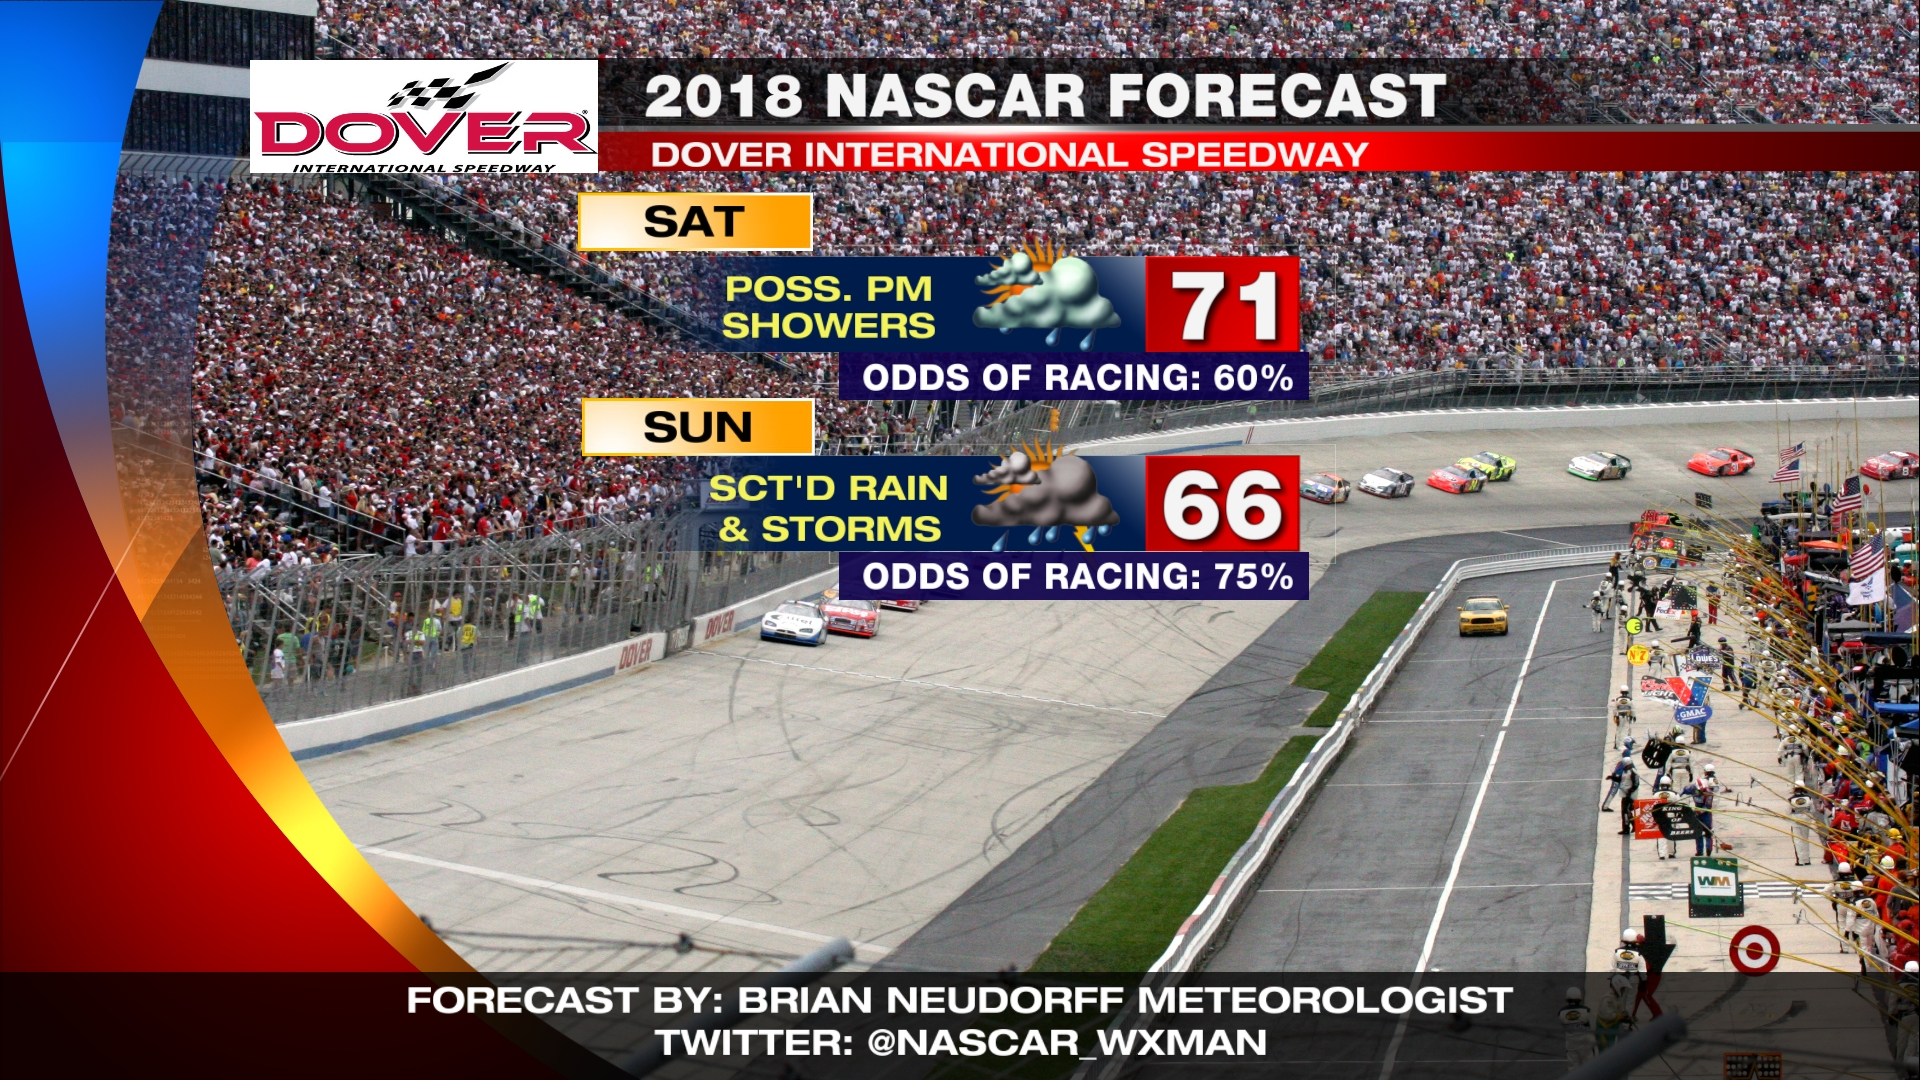 A stalled cold front around Dover International Speedway will be the focus of unsettled weather both Saturday and Sunday for both the NASCAR Xfinity ...